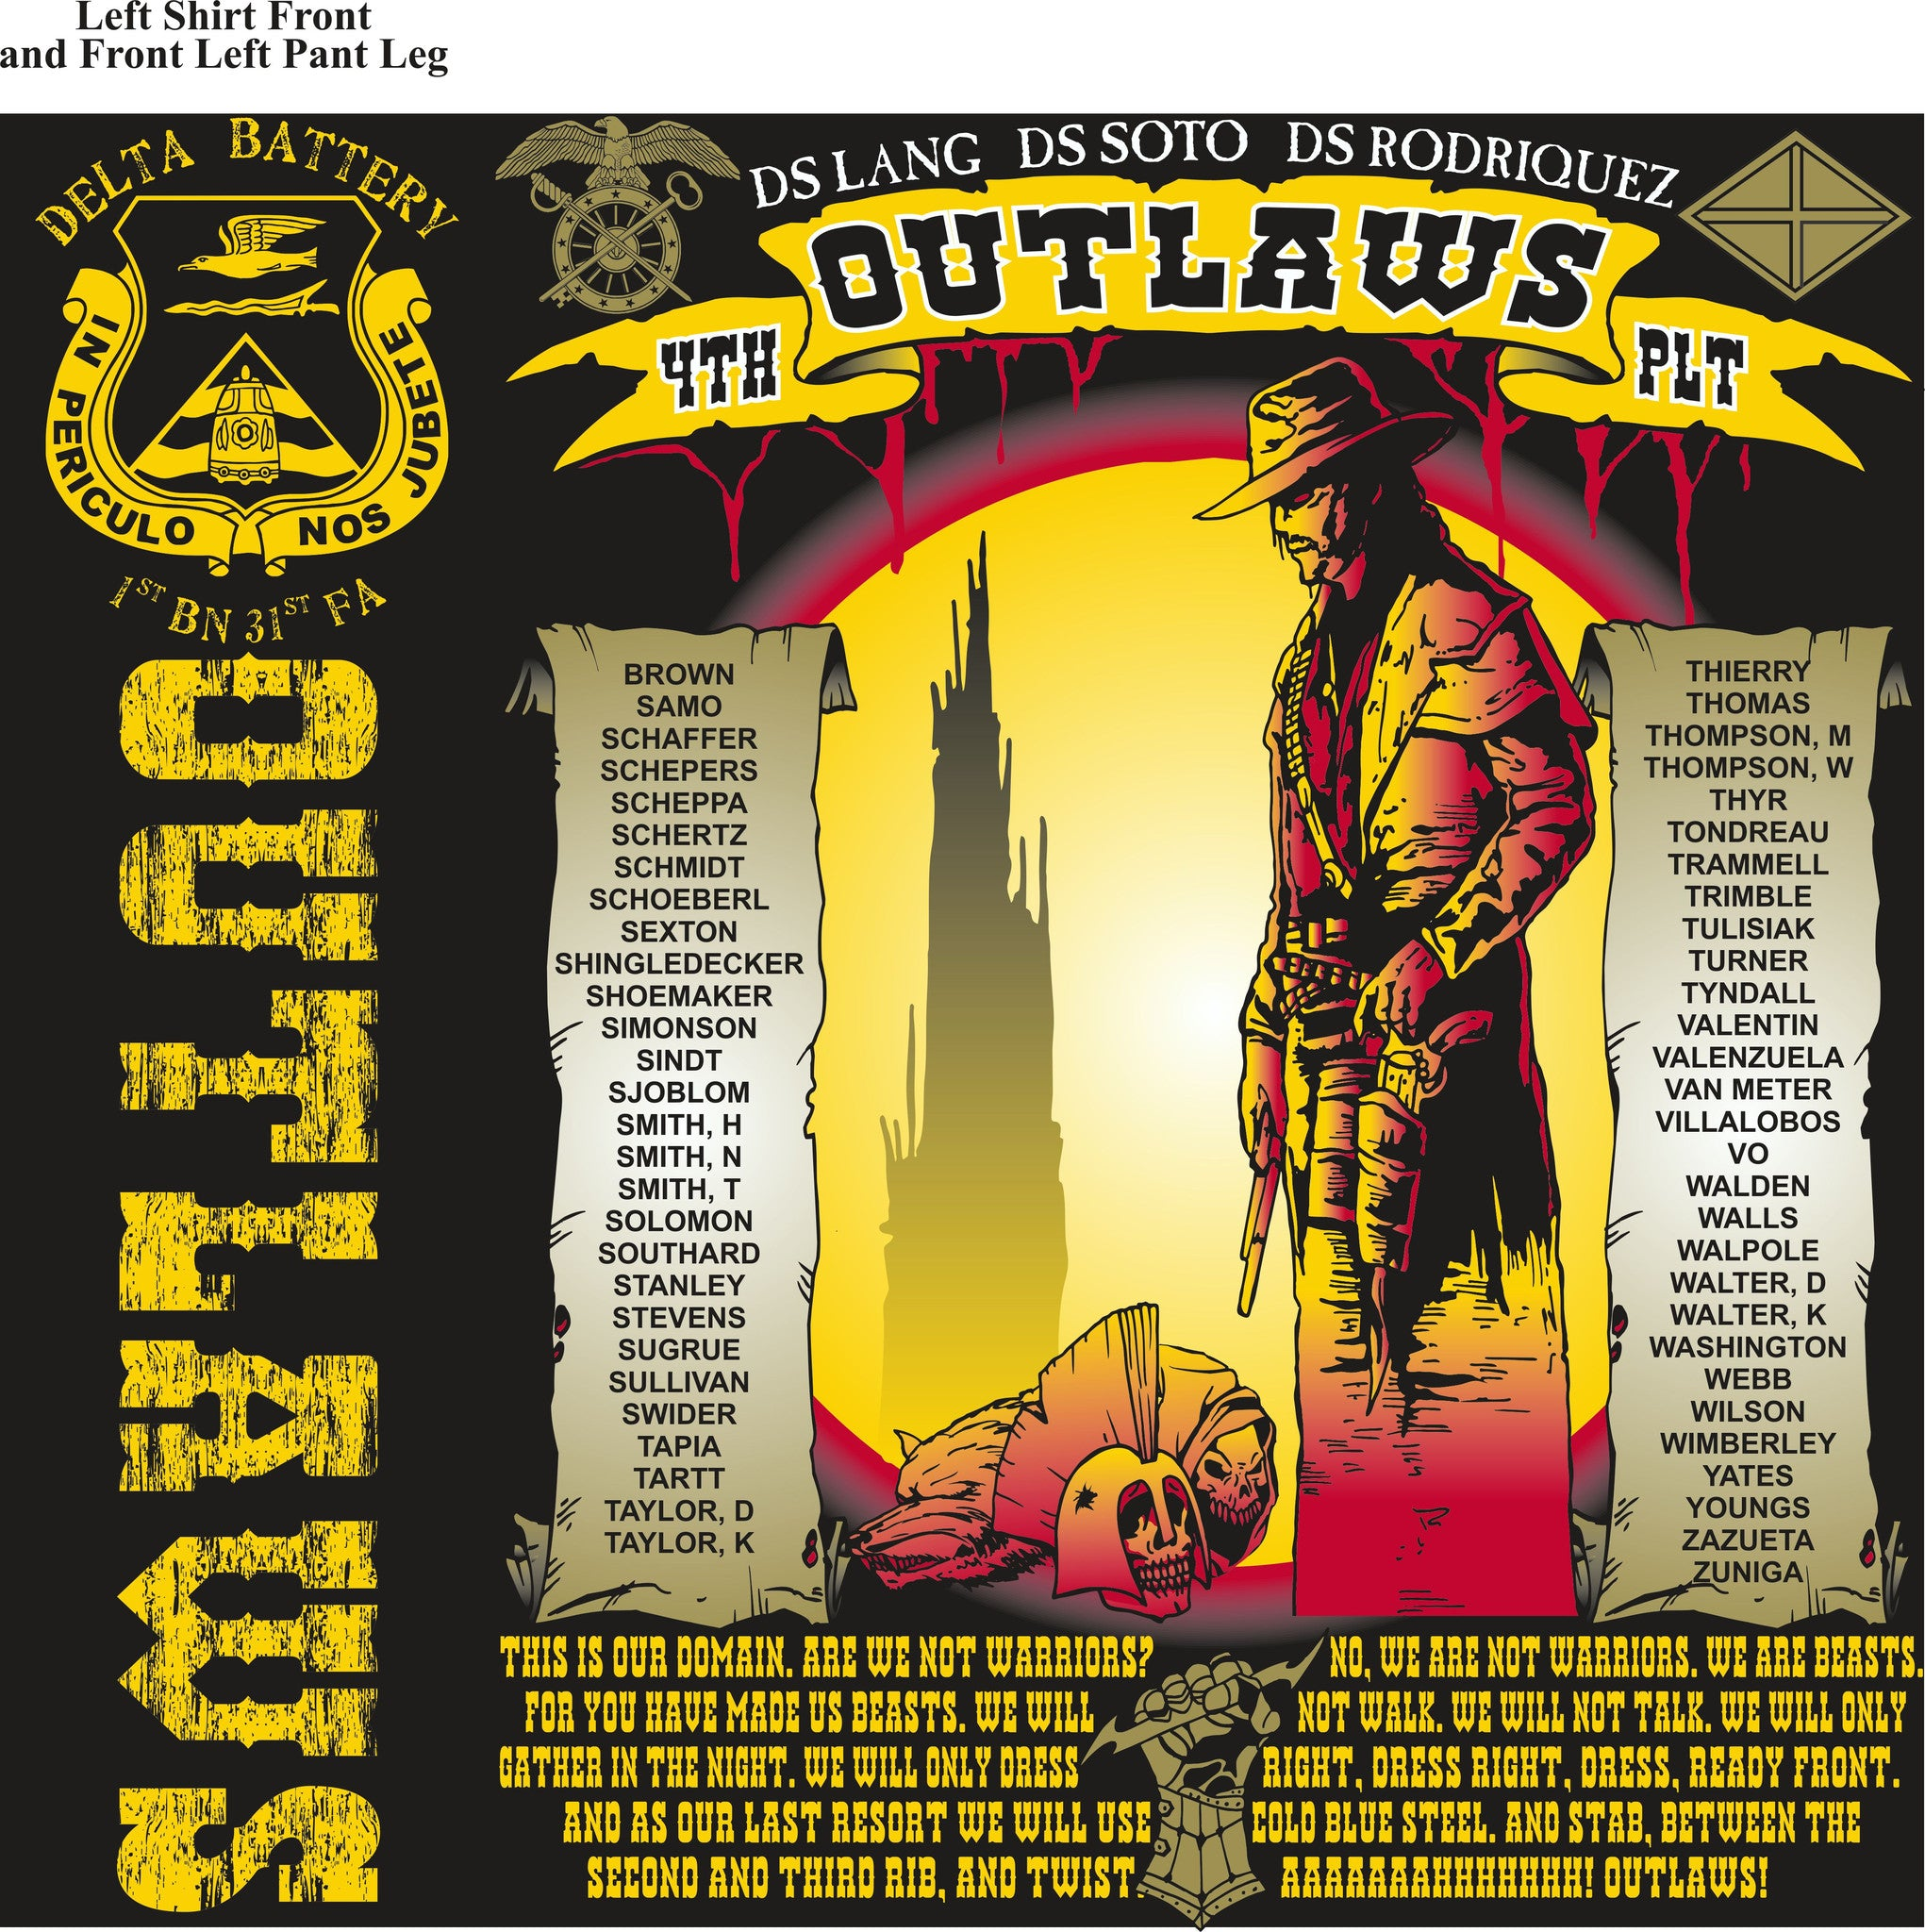 PLATOON SHIRTS (2nd generation print) DELTA 1st 31st OUTLAWS SEPT 2016